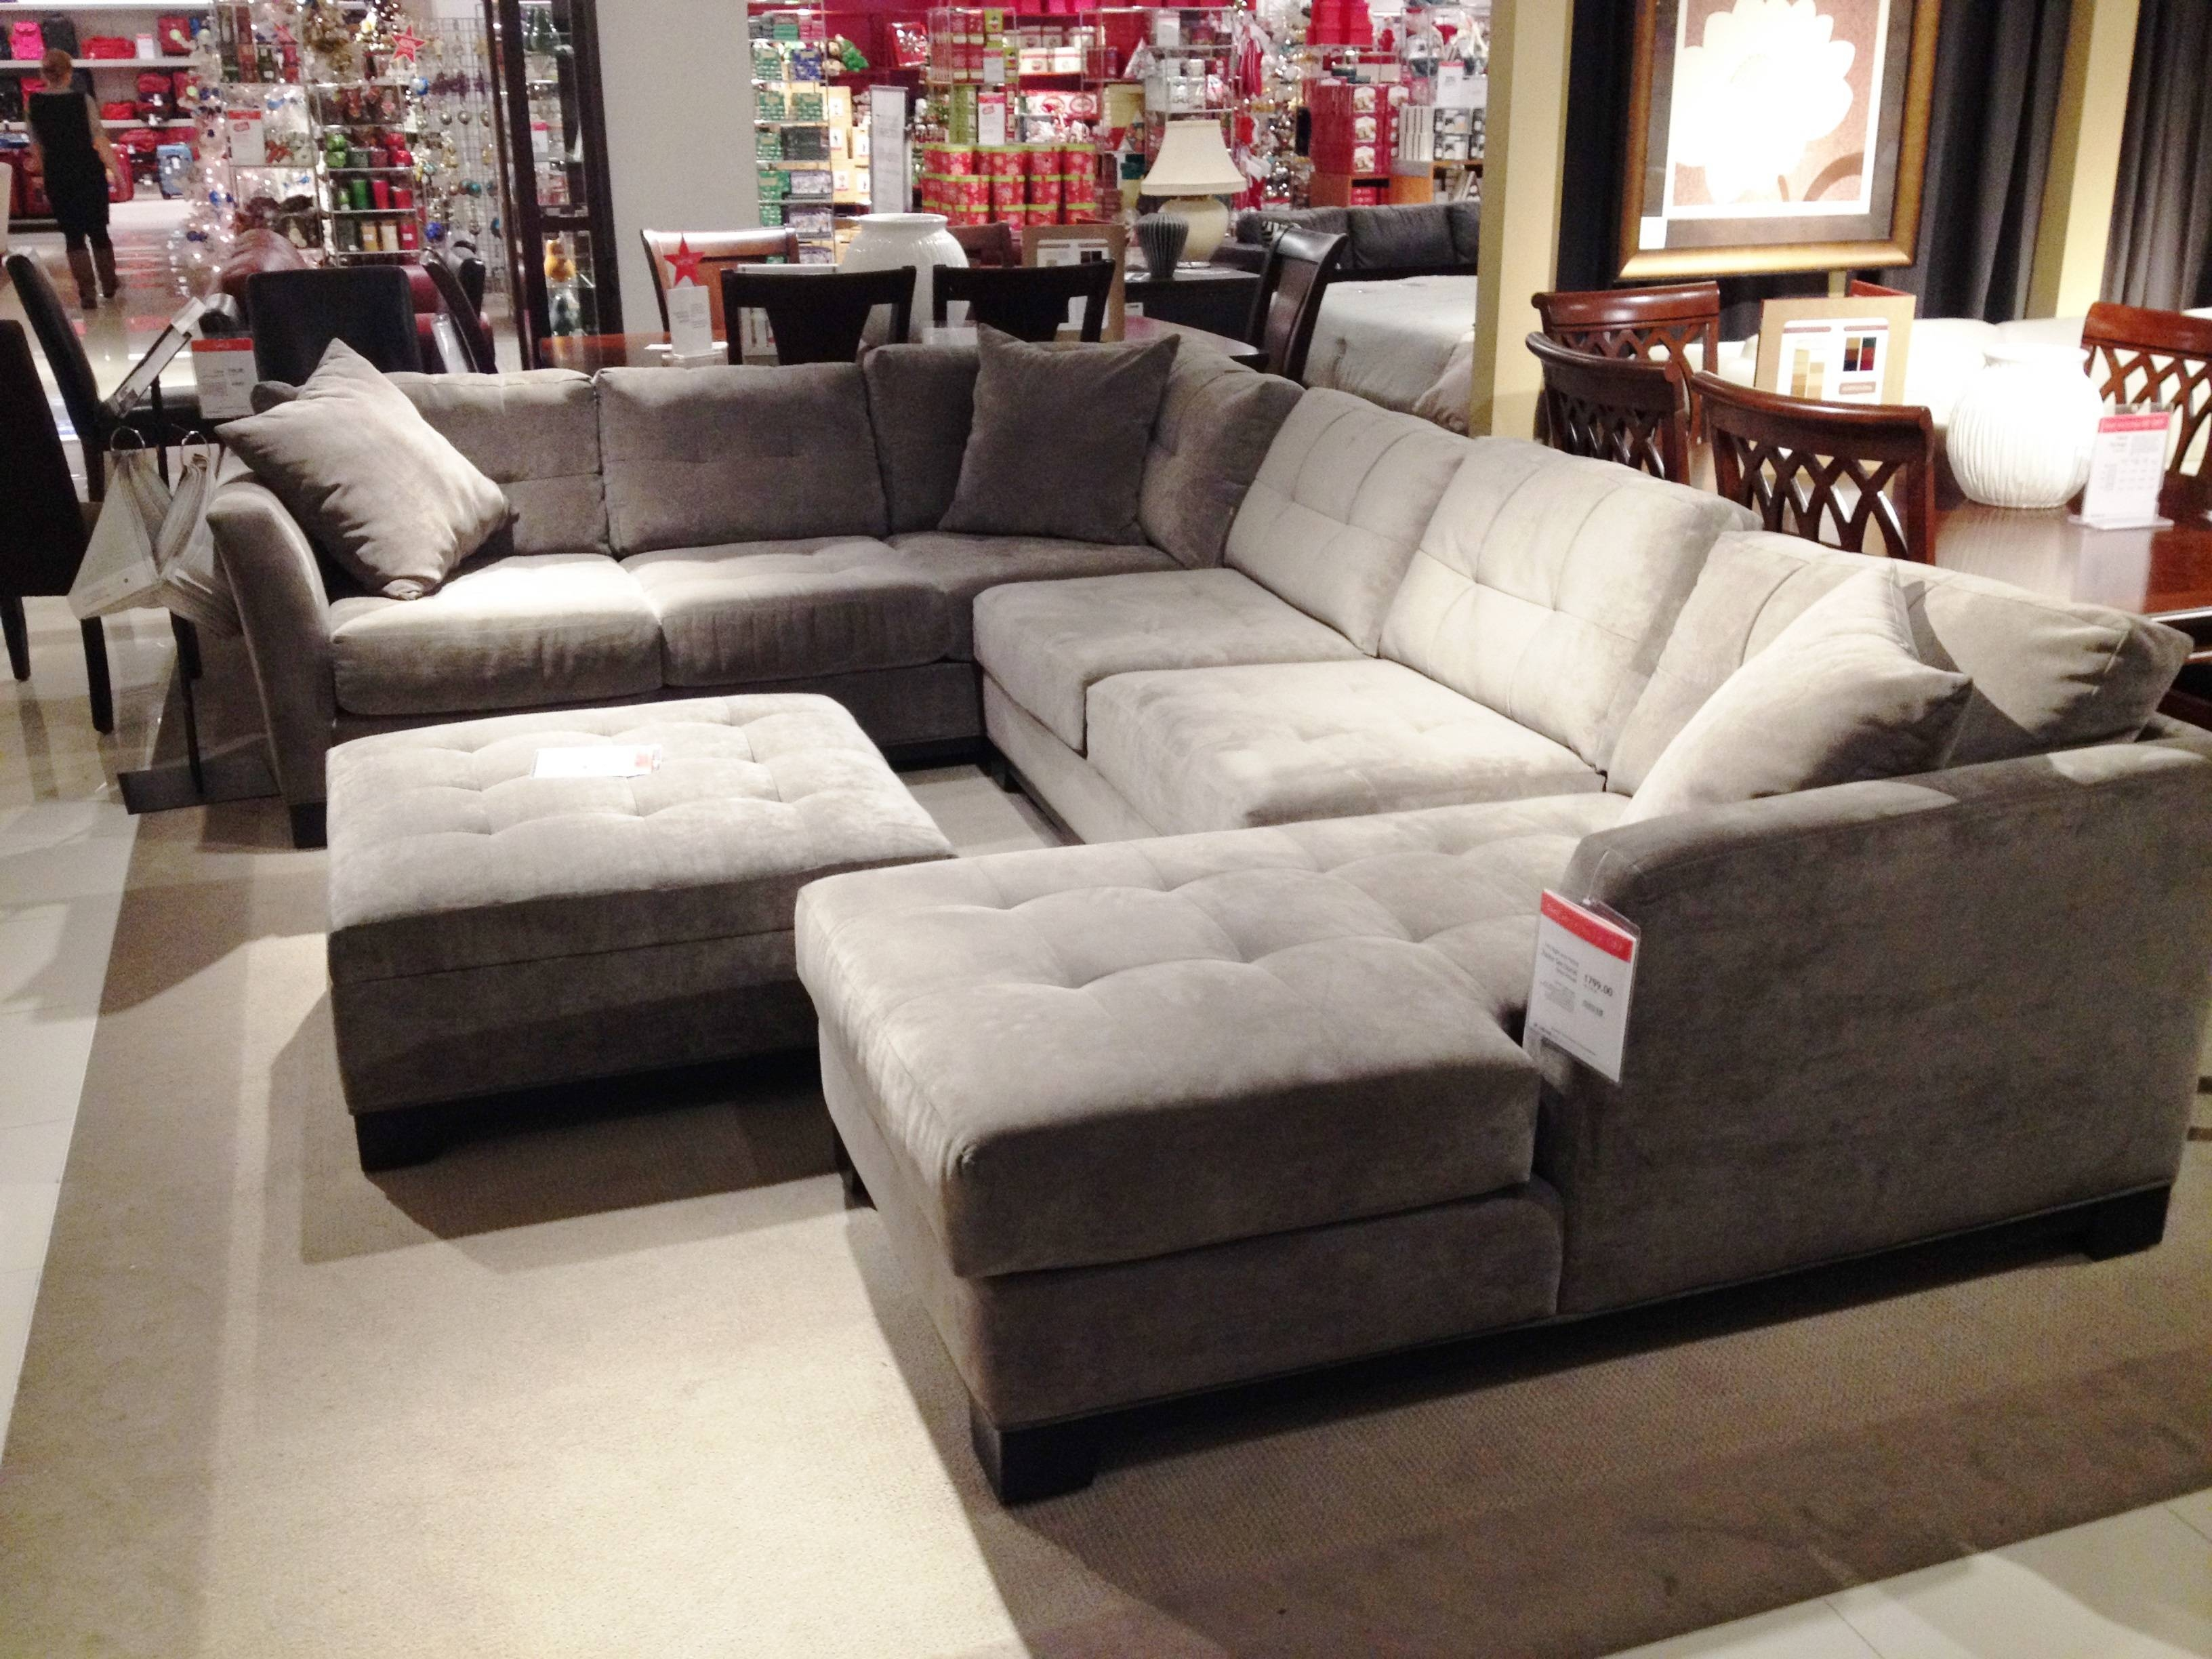 Home Design : 93 Inspiring Couches For Small Spacess | Tehranmix for Macys Leather Sofas Sectionals (Image 6 of 25)